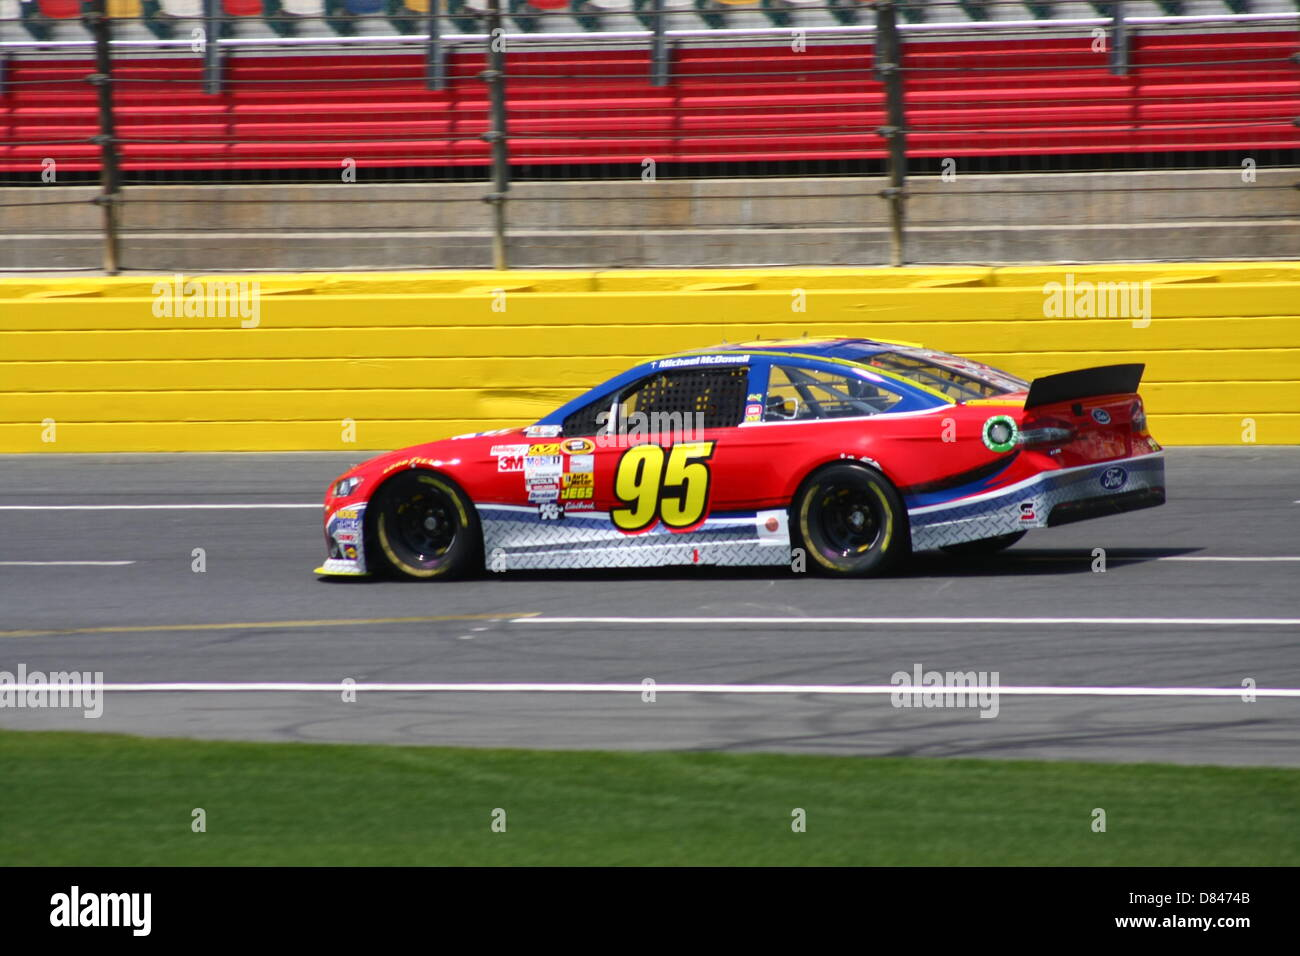 Charlotte, USA. 17th May, 2013. Michael McDowell passes the grandstand during final practice for the Sprint Showdown - Stock Image